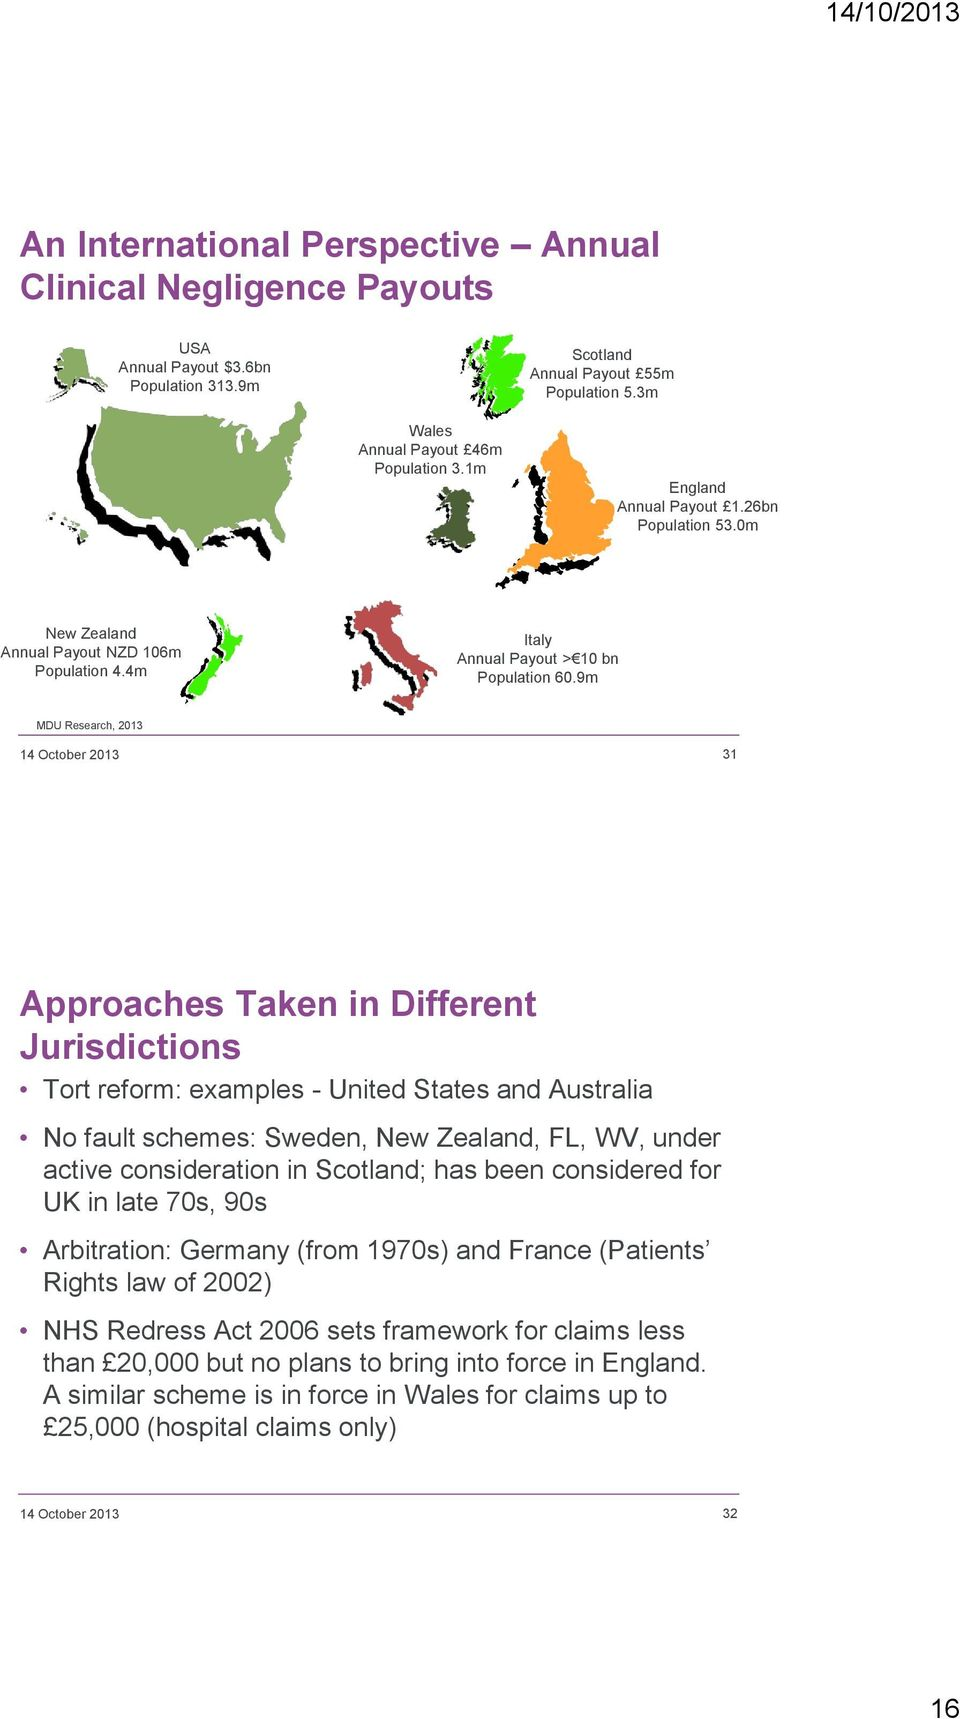 9m MDU Research, 2013 14 October 2013 31 Approaches Taken in Different Jurisdictions Tort reform: examples - United States and Australia No fault schemes: Sweden, New Zealand, FL, WV, under active